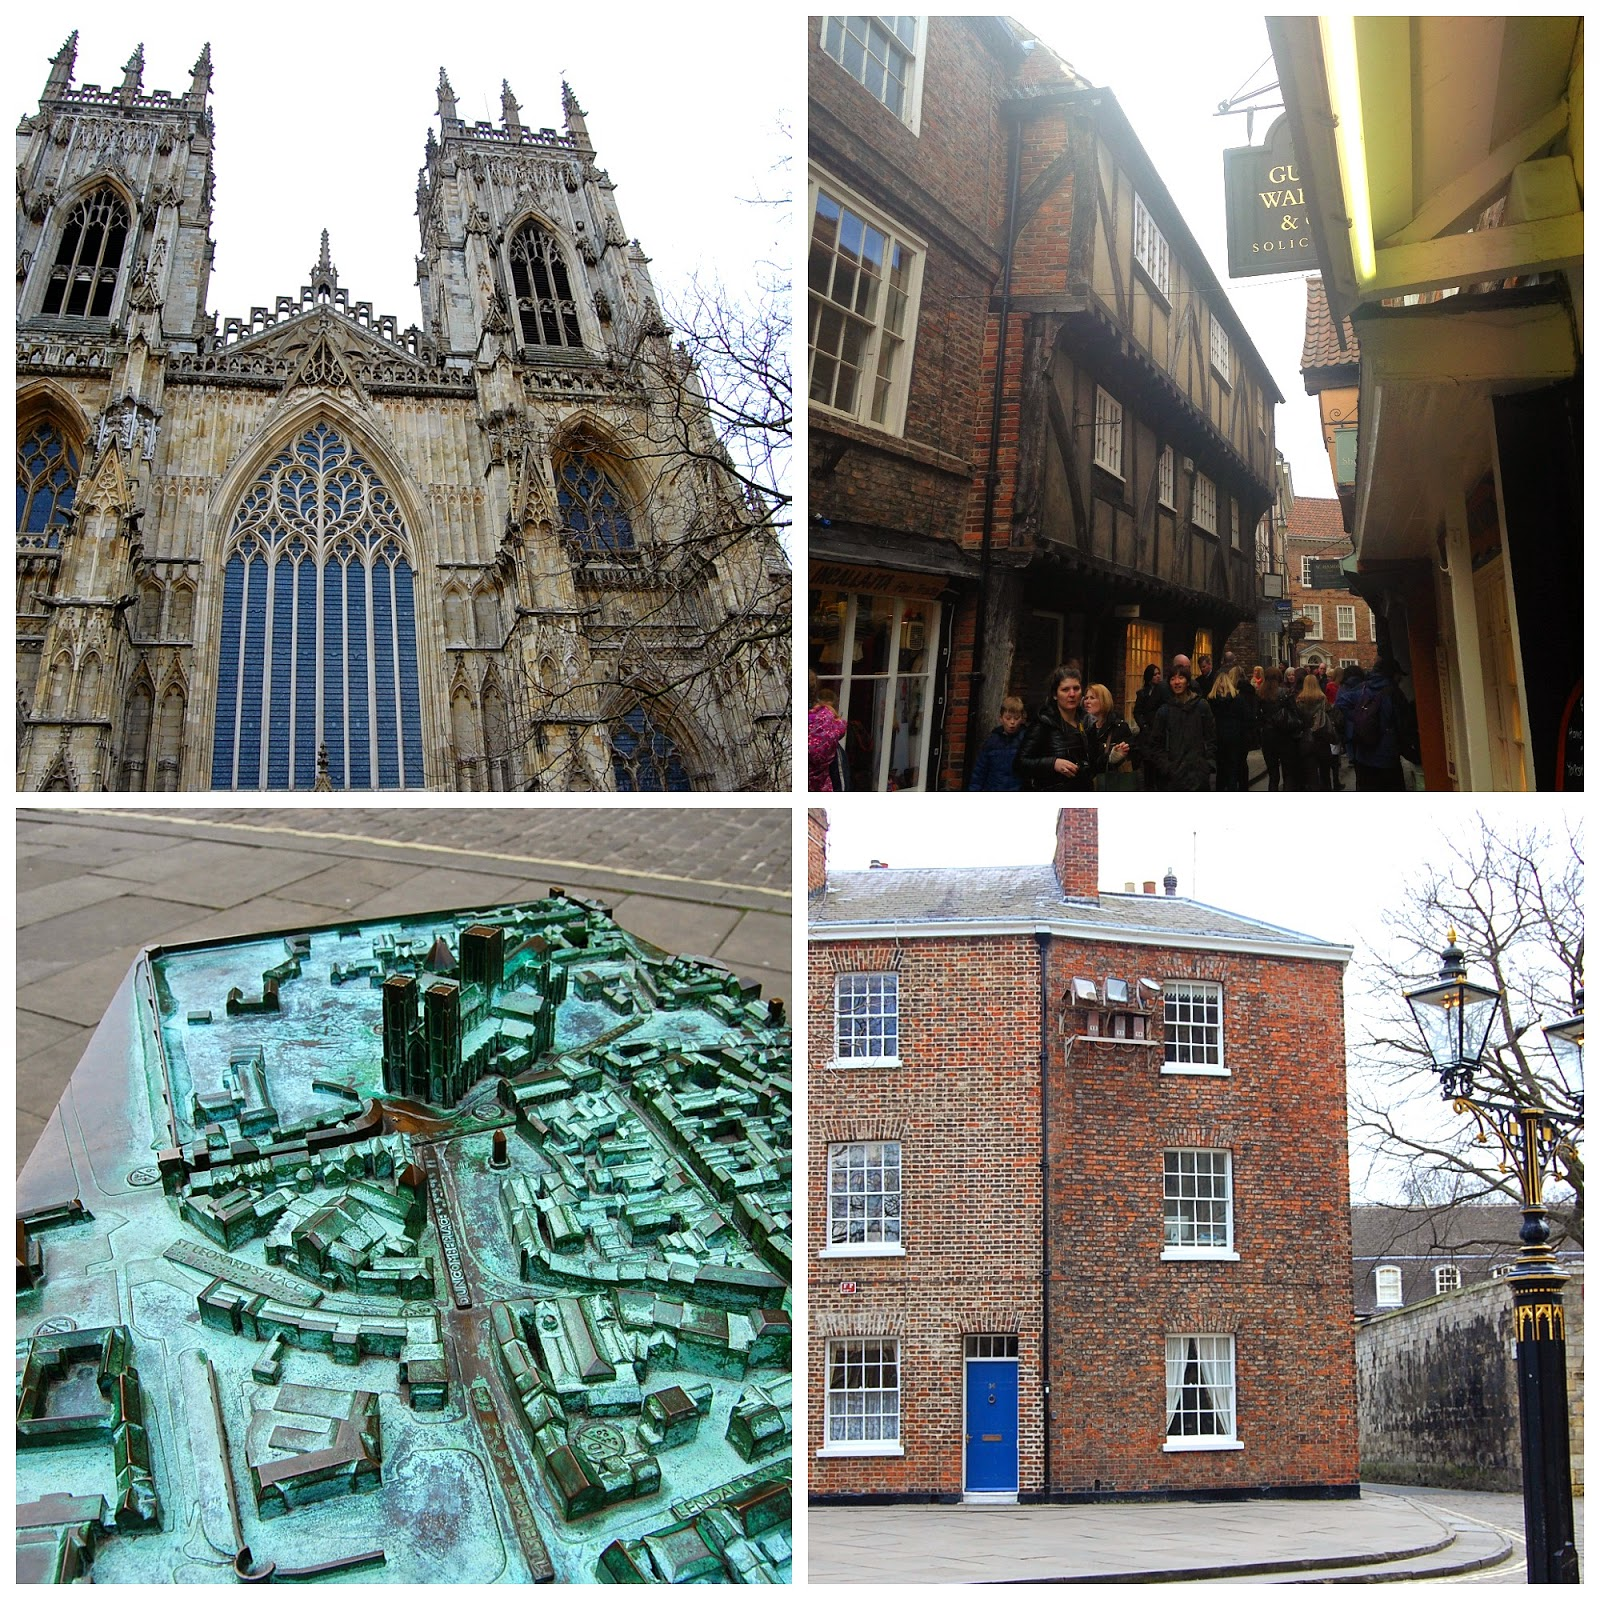 York Minster and Shambles